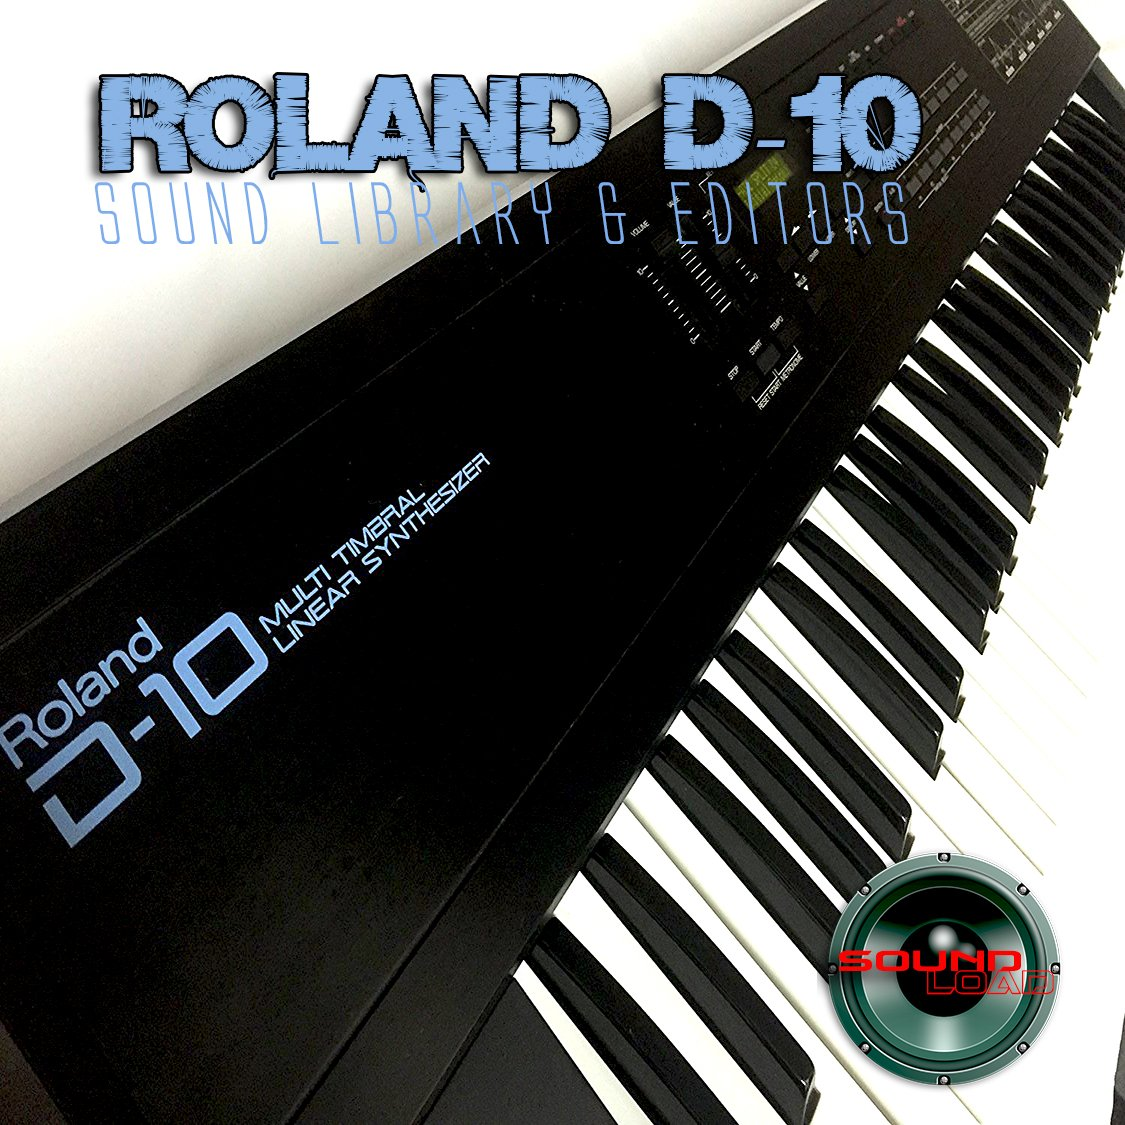 for ROLAND D-10 Huge Original Factory and NEW Created Sound Library & Editors on CD